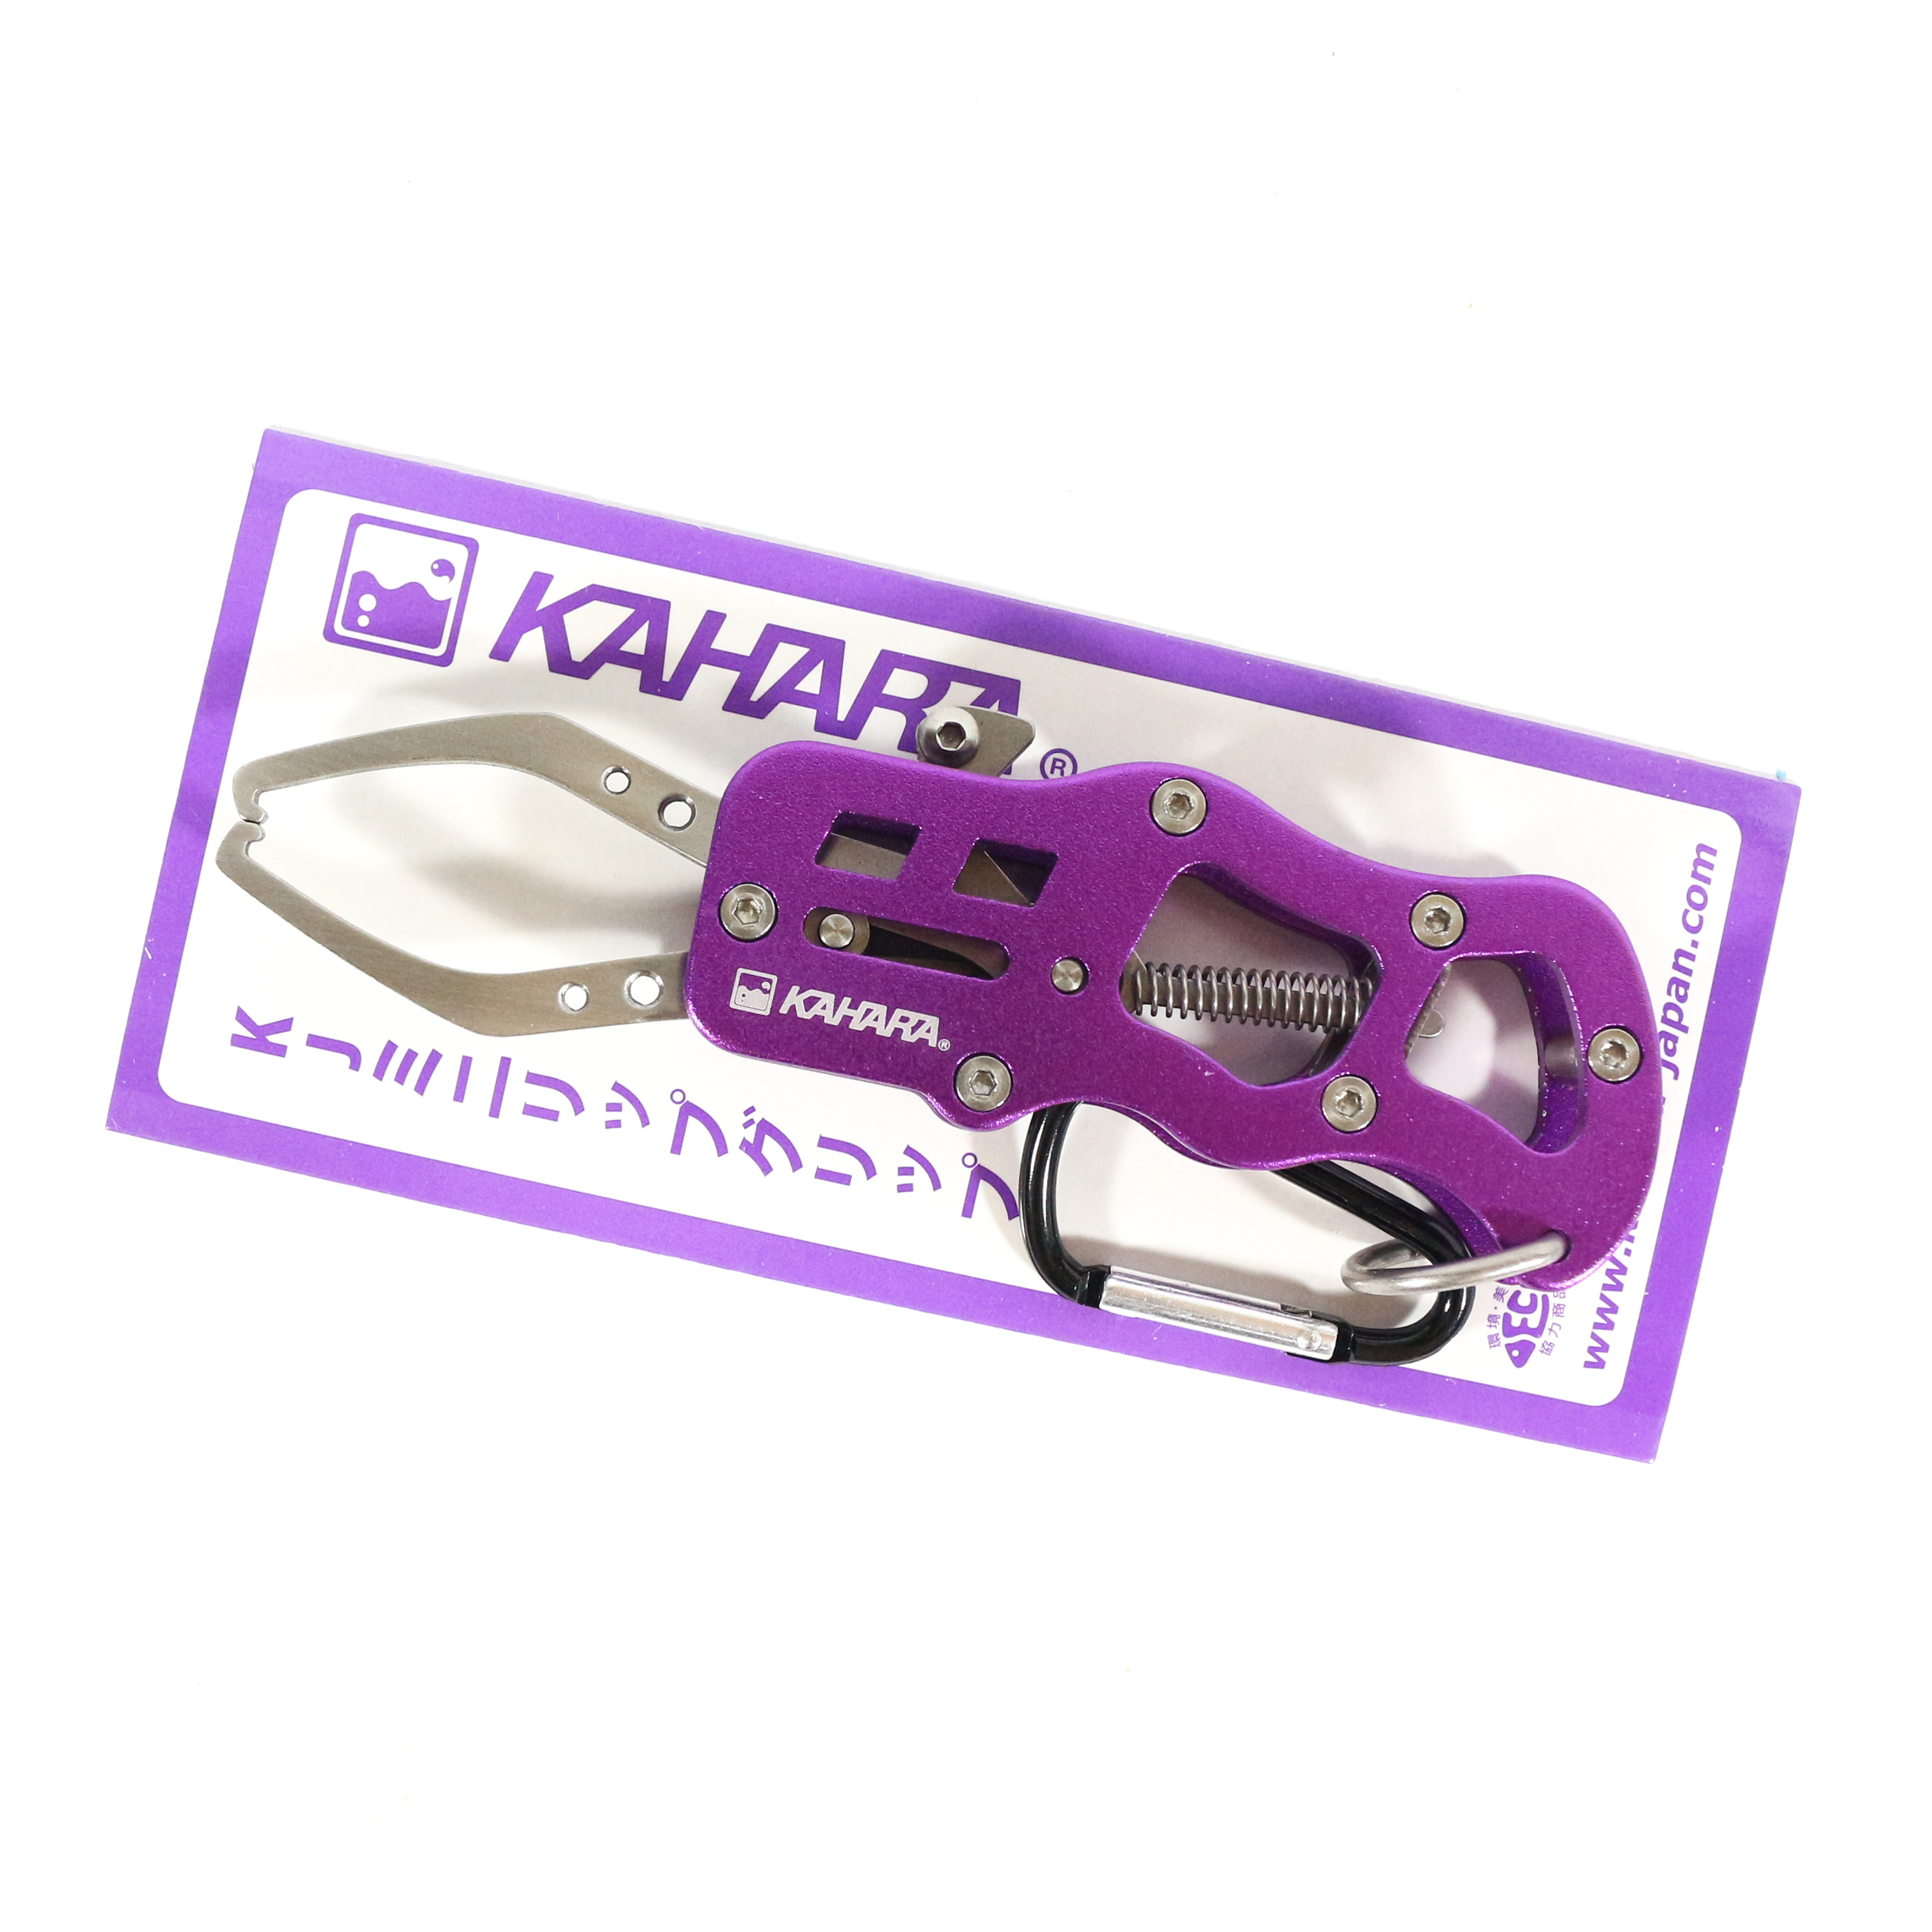 Kahara KJ Mini Lip Grip Tool Purple (8580)